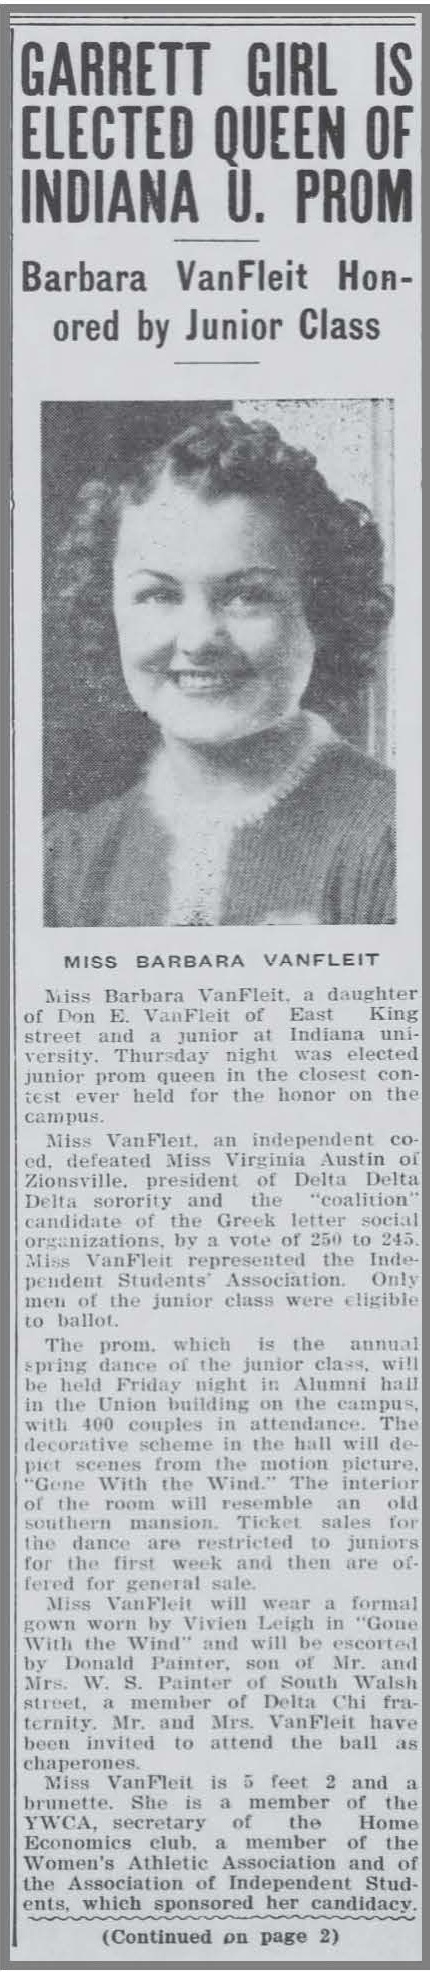 "This is a black and white newspaper clippings which includes the following text and includes a picture of a college woman with short curls. GARRETT GIRL IS ELECTED QUEEN OF INDIANA U. PROM: Barbara VanFleit Honored by Junior Class Miss Barbara VanFleit of East King street and a junior at Indiana University, Thursday night was elected junior prom queen in the closest contest ever held for the honor on the campus. Miss VanFleit, an independent coed, defeated Miss Virginia Austin of Zionsville, president of Delta Delta Delta sorority and the ""coalition"" candidate of the Greek letter social organizations by a vote of 256 to 245. Miss VanFleit represented the Independent Students' Association. Only men of the junior class were eligible to ballot. The prom, which is the annual spring dance of the junior class, will be held Friday night in Alumni Hall in the Union building on campus with 400 couples in attendance. The decorative scheme in the hall will depict scenes from the motion picture ""Gone with the Wind."" The interior of the room will resemble an old southern mansion. Ticket sales for this dance are restricted to juniors for the first week and then are offered for general sale. Miss VanFleit will wear a formal gown worn by Vivien Leigh in ""Gone with the Wind"" and will be escorted by Donald Painter, son of Mr. and Mrs. W.S. Painter of South Walsh street, a member of the Delta Chi fraternity. Mr. and Mrs. VanFleit have been invited to attend the ball as chaperones. Miss VanFleit is 5 feet 2 and a brunette. She is a member of the YWCA, secretary of the Home Economics club, a member of the Women's Athletic Association and of the Association of Independents Students, which sponsored her candidacy."